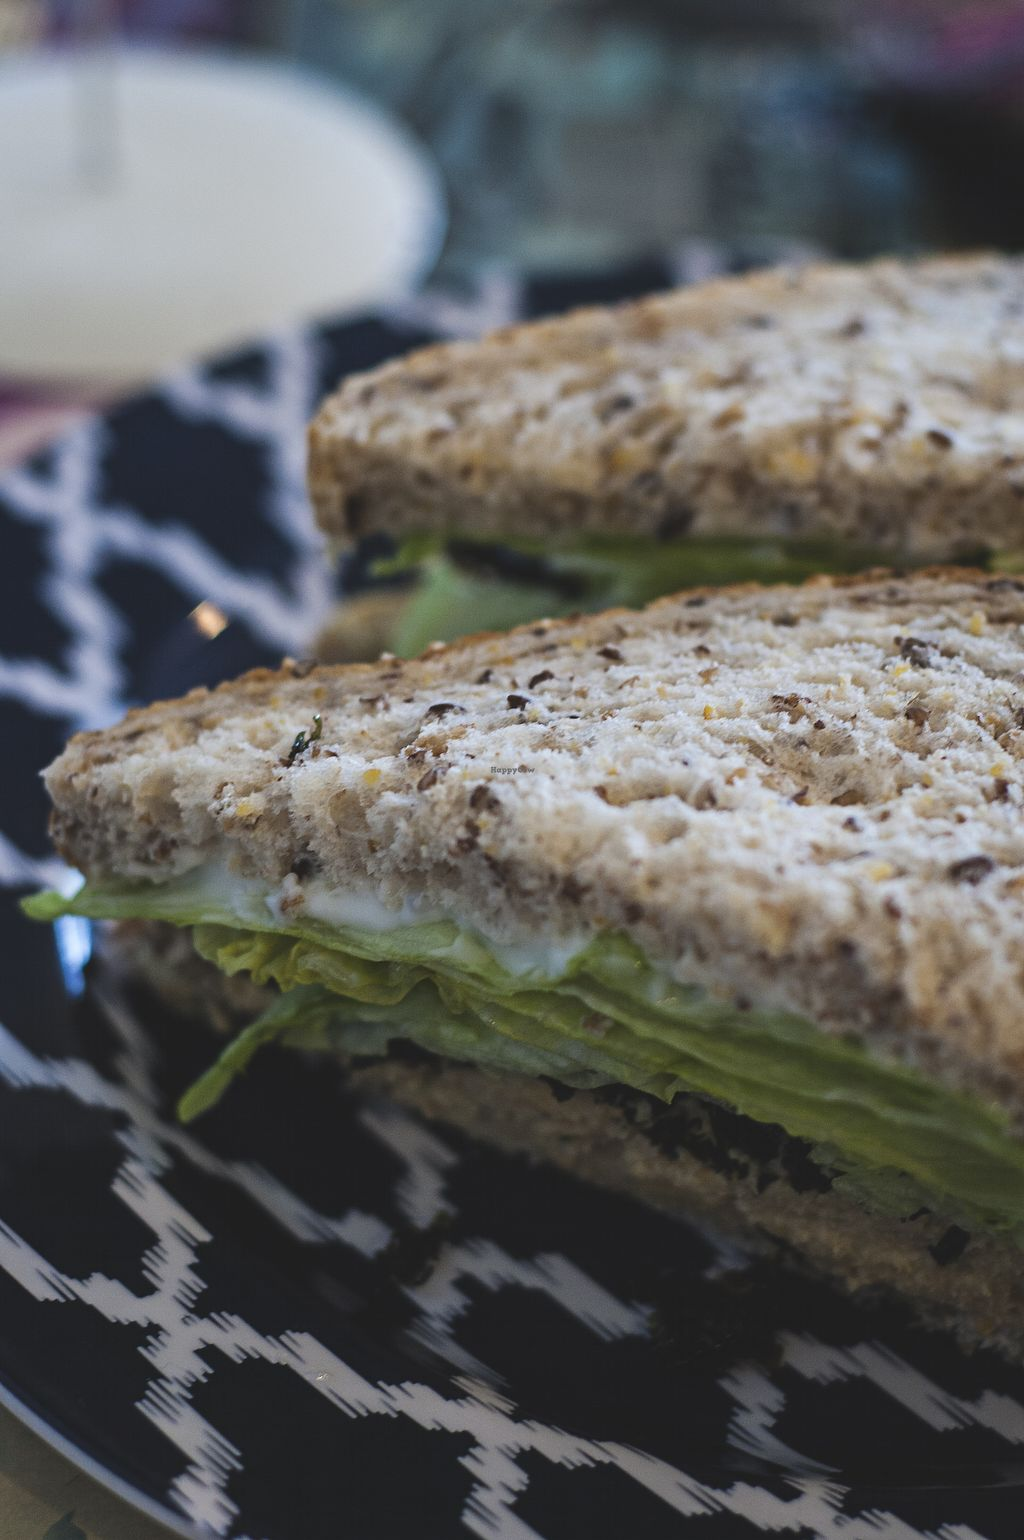 """Photo of Sweet Release Cakes and Treats  by <a href=""""/members/profile/peasandunderstanding"""">peasandunderstanding</a> <br/>The chuna sandwich with nori; perfect lunch!  <br/> April 17, 2018  - <a href='/contact/abuse/image/66770/387253'>Report</a>"""